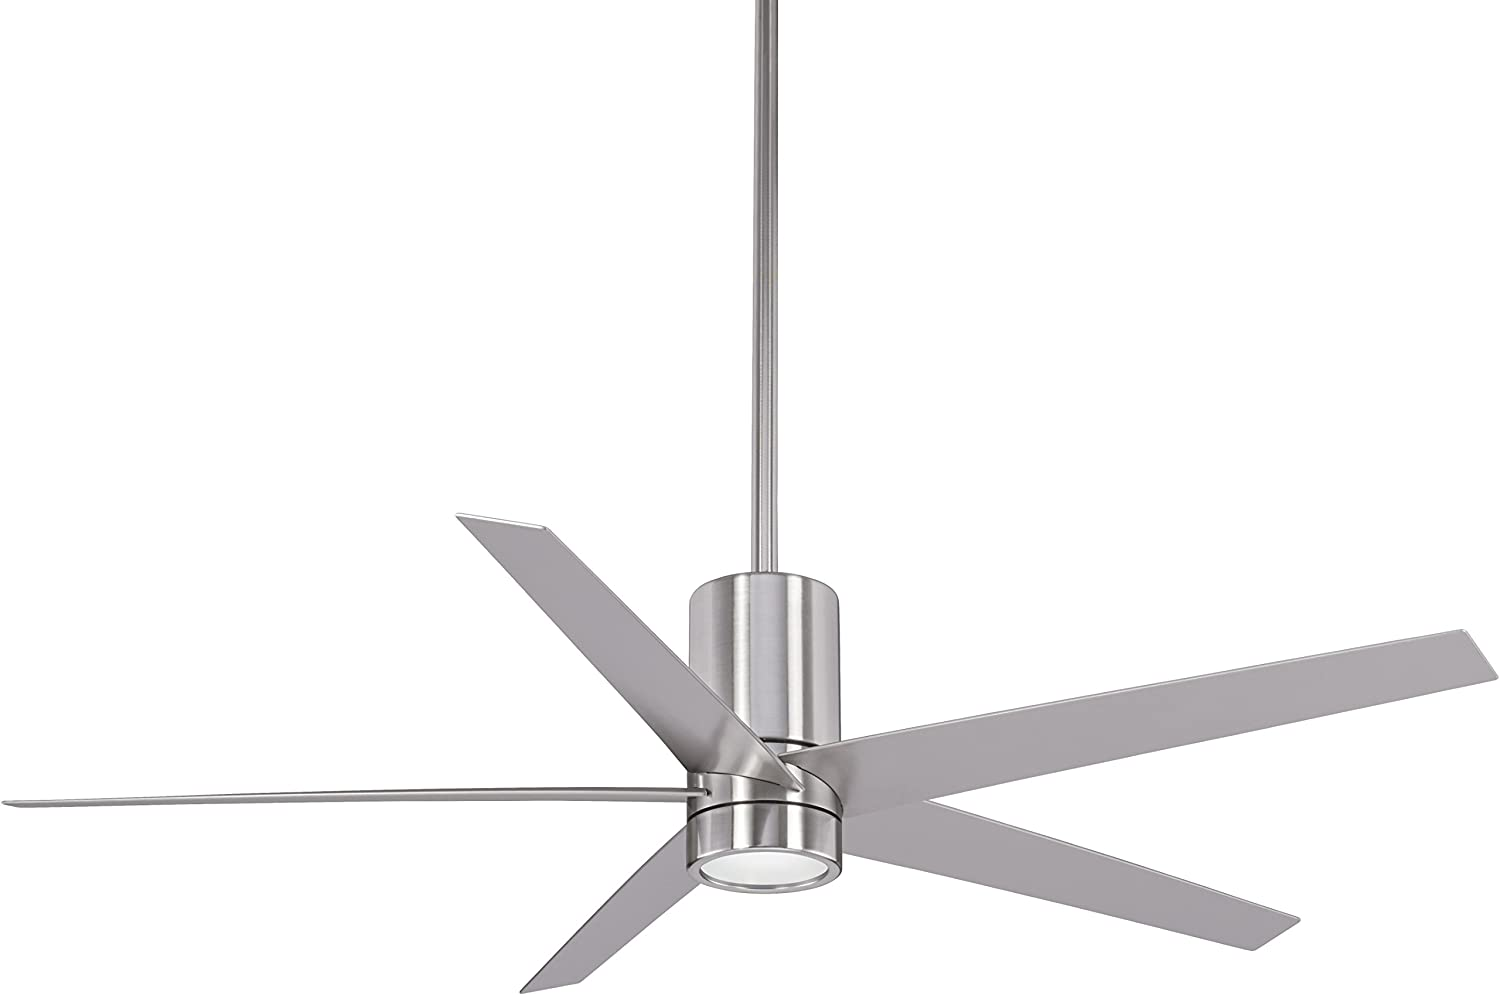 Minka Lavery F828-BN Protruding Mount, 5 Brushed Nickel Blades Ceiling fan  with 35 watts light, Brushed Nickel